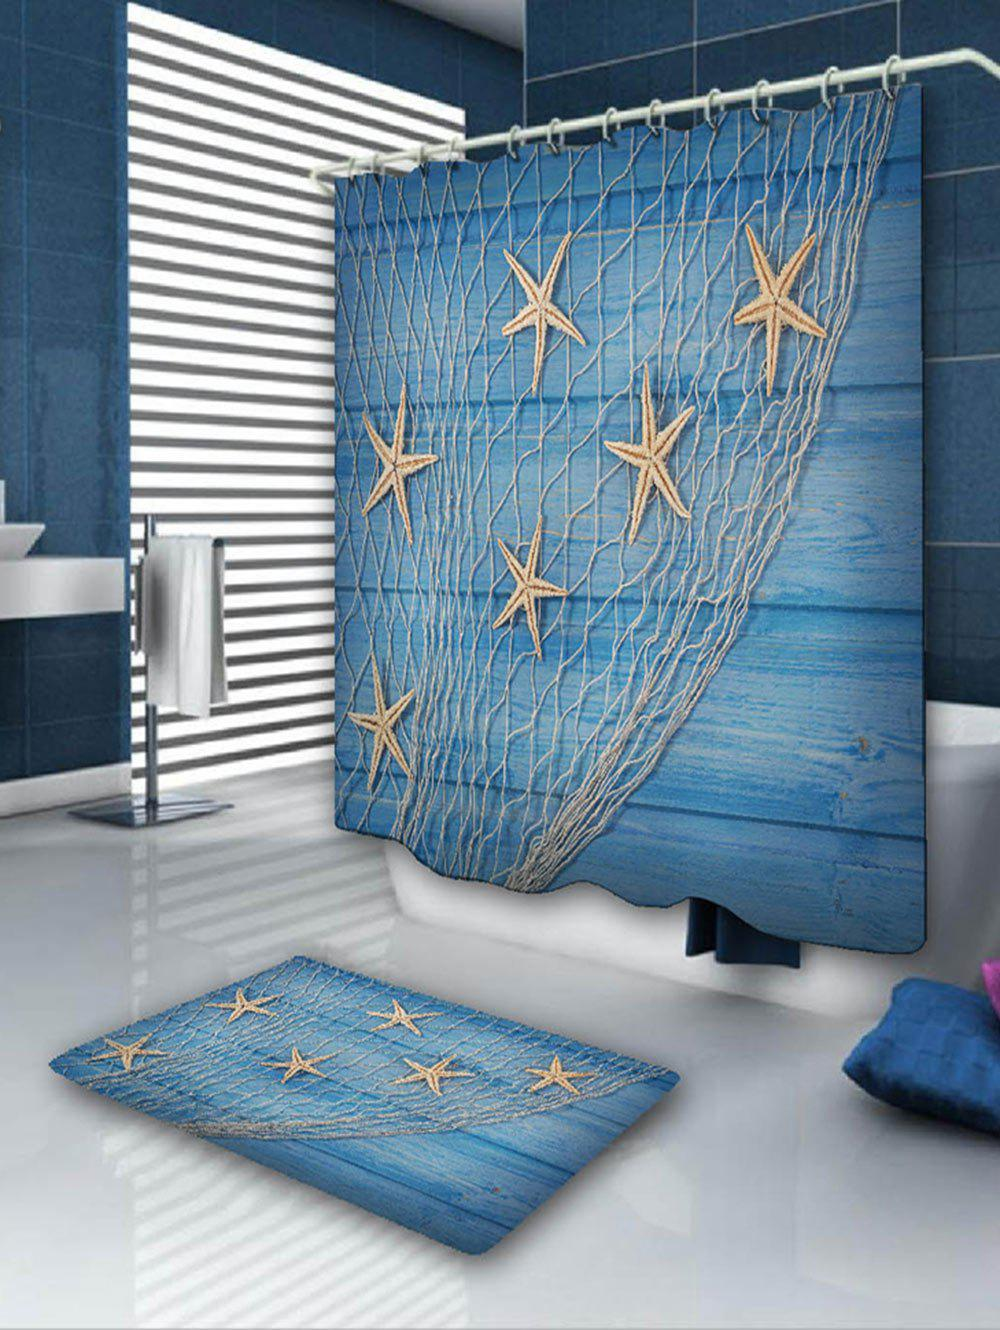 Starfish Fishing Net Bath Curtain and Rug starfish fishing net wood grain nautical shower curtain